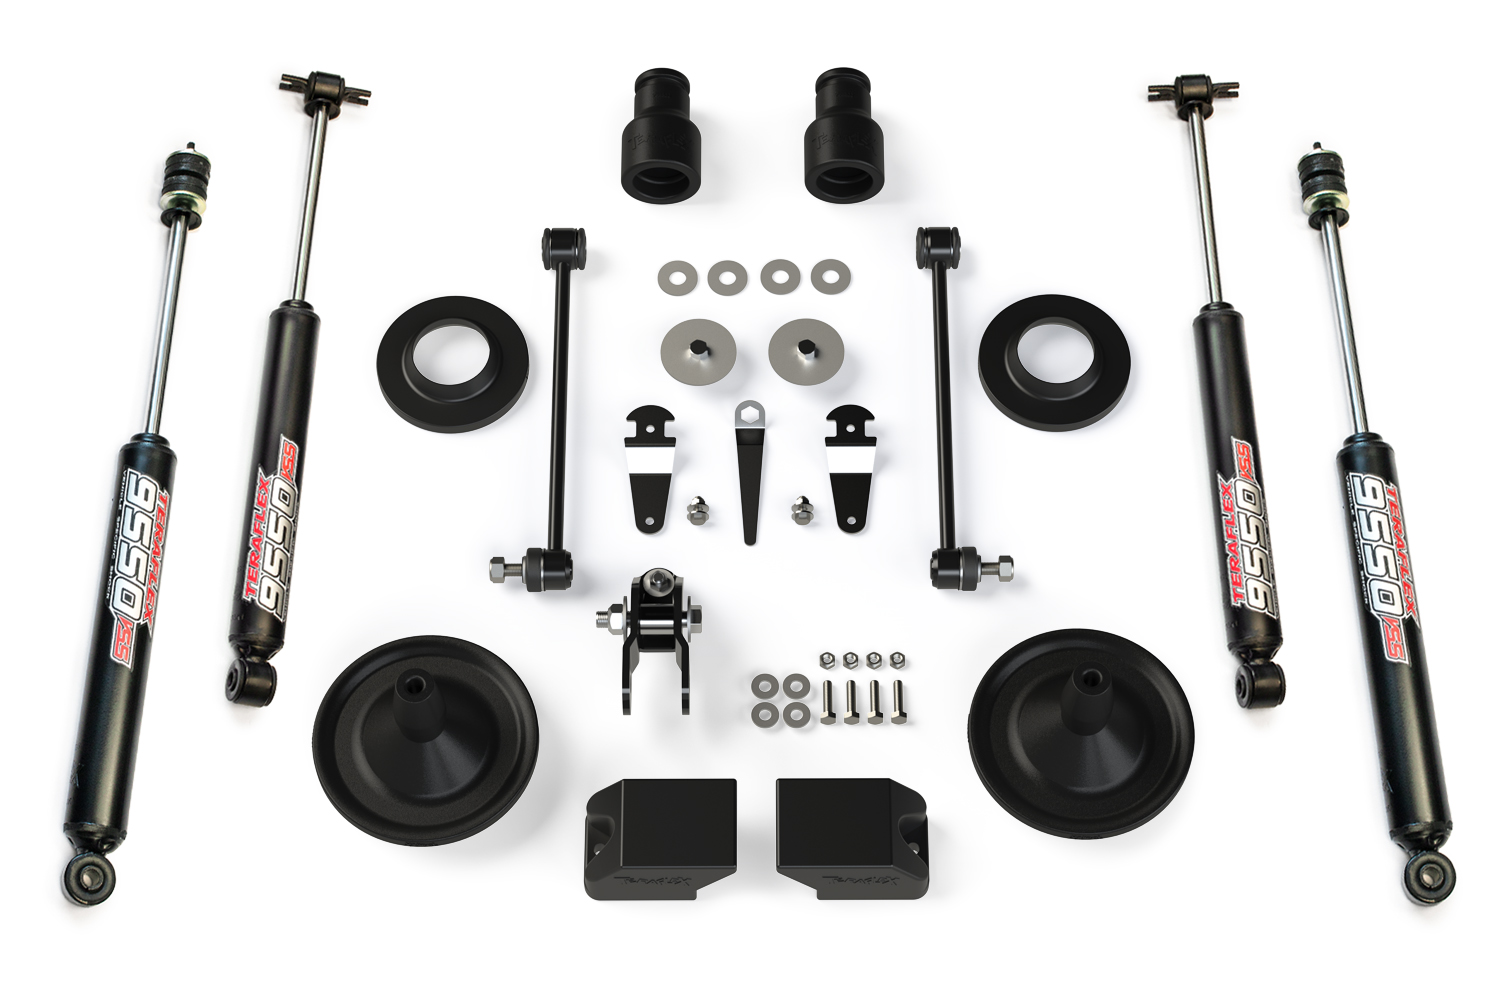 Teraflex Suspension 2.5in Budget Boost Lift Kit, w/ 9550 Shocks  - JK